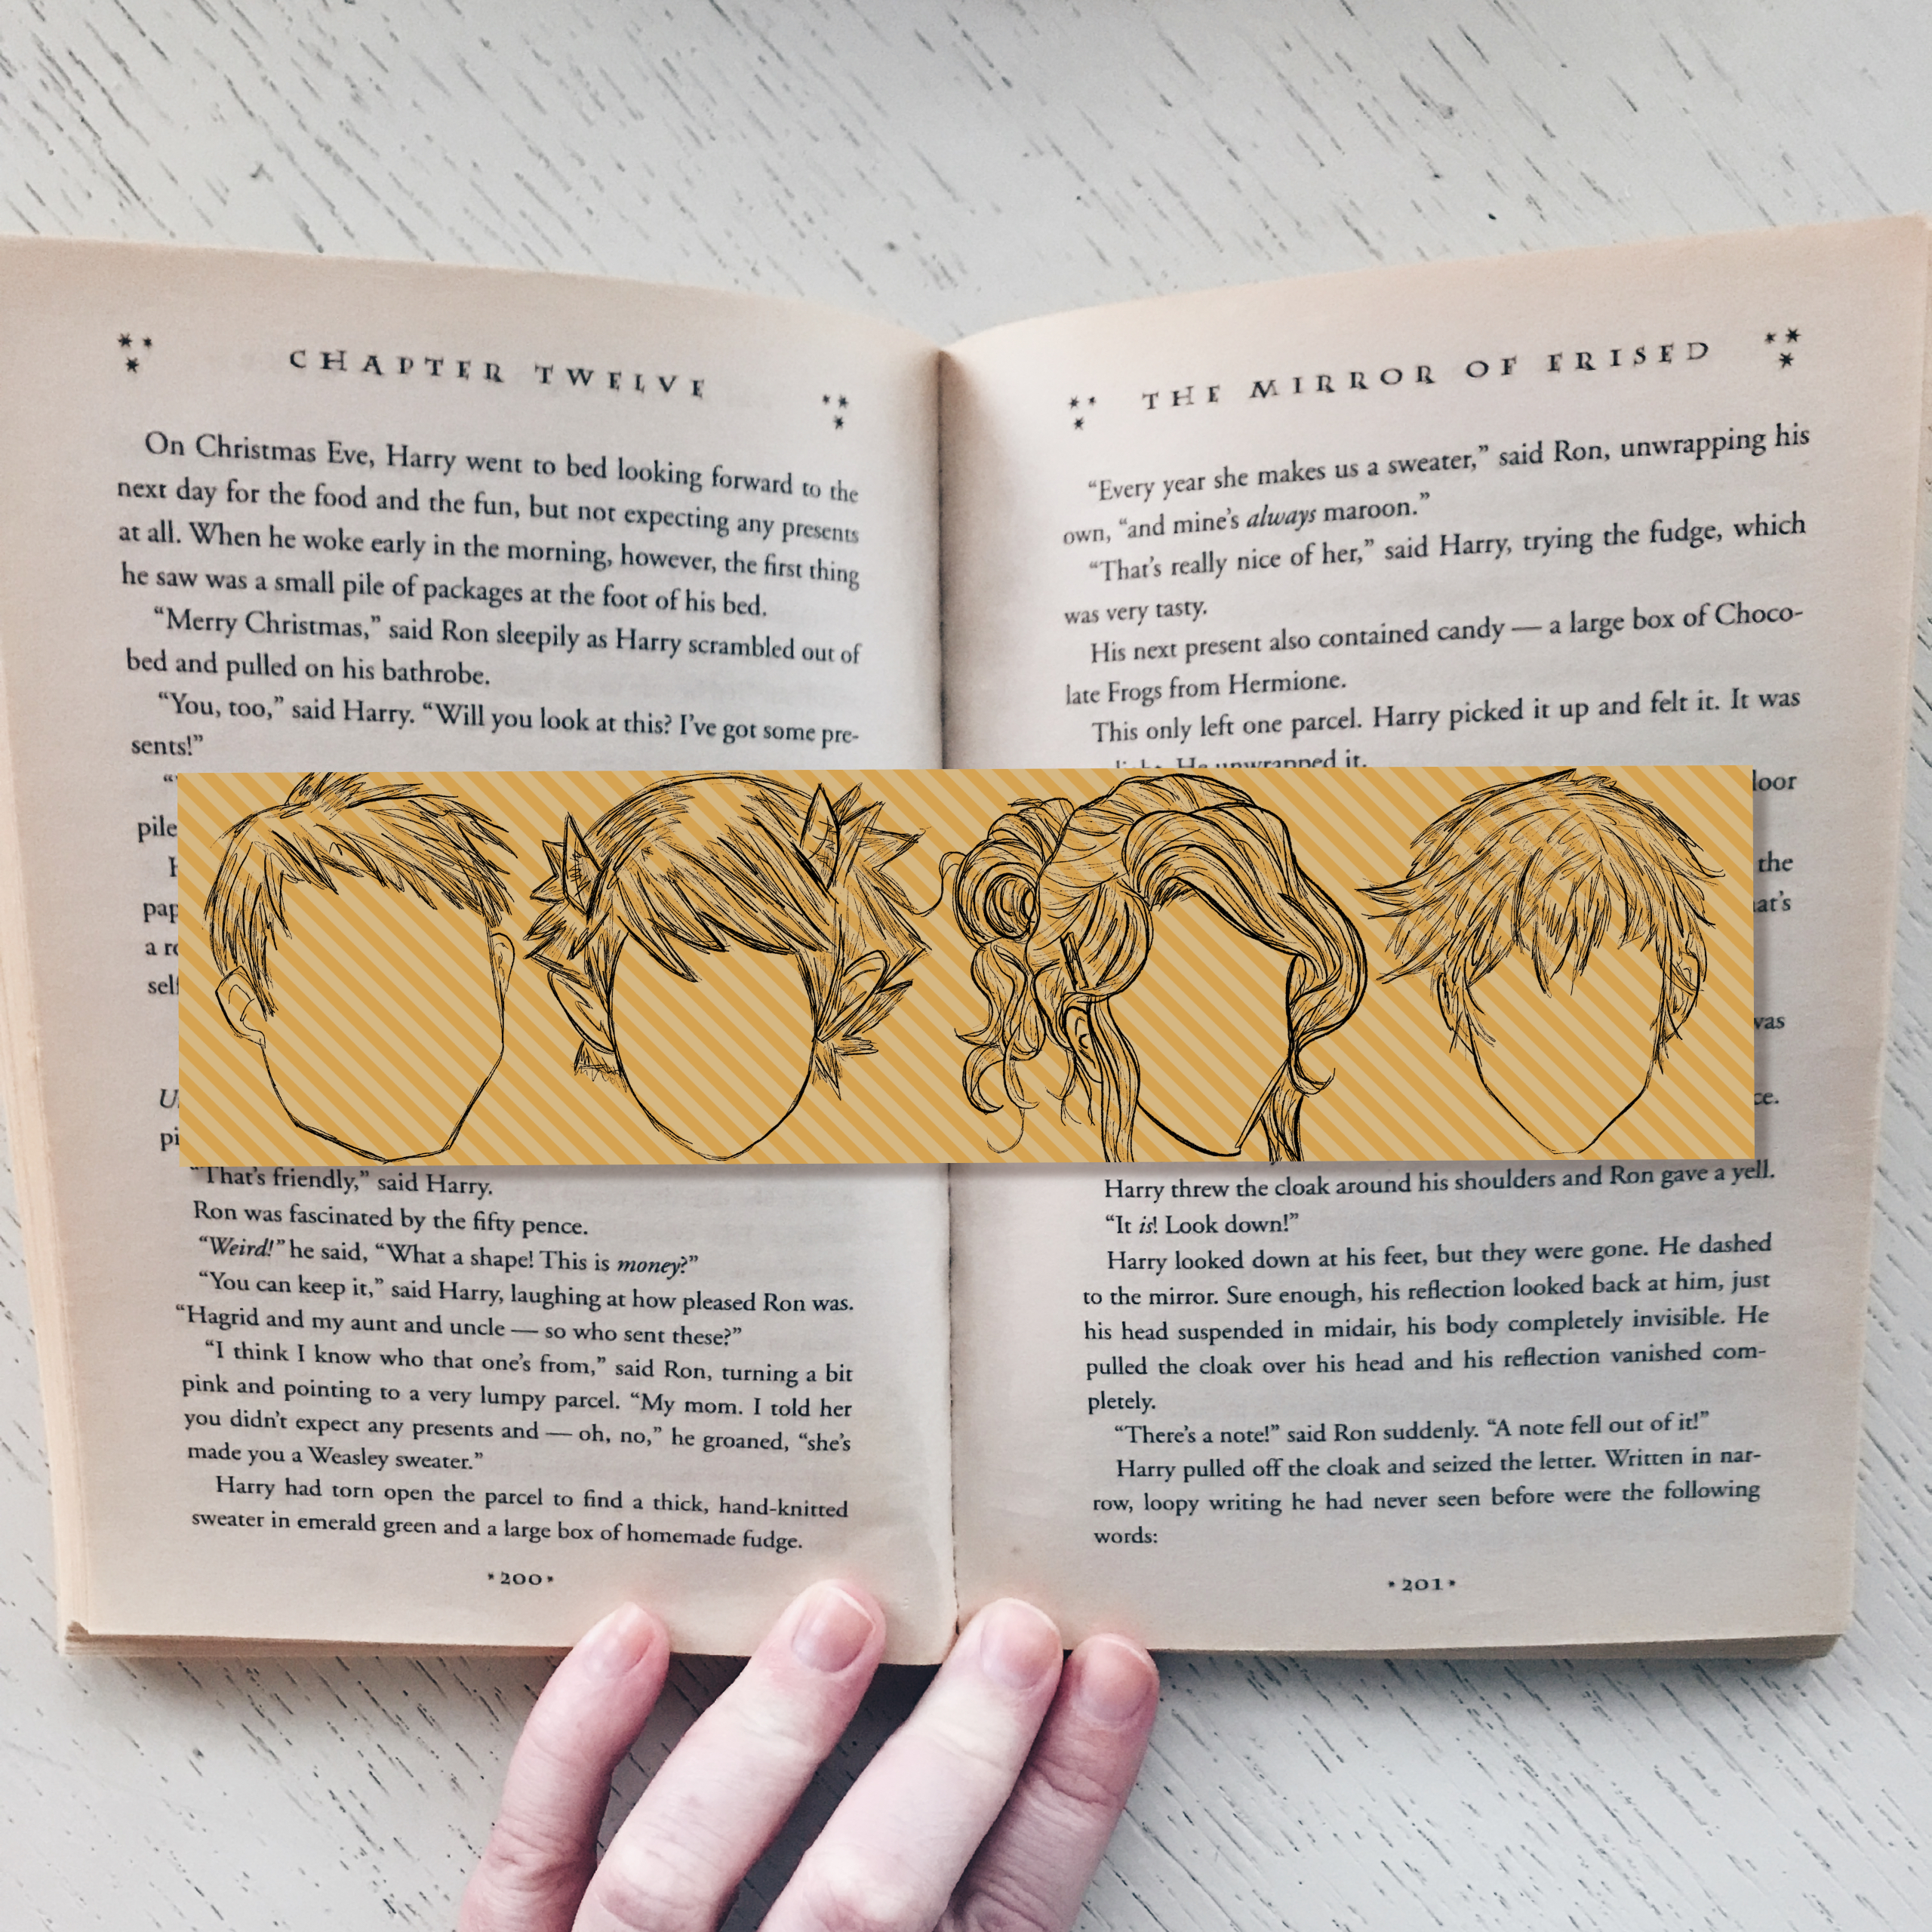 Percy Jackson and the Olympians Character Silhouette Bookmark 122114-32